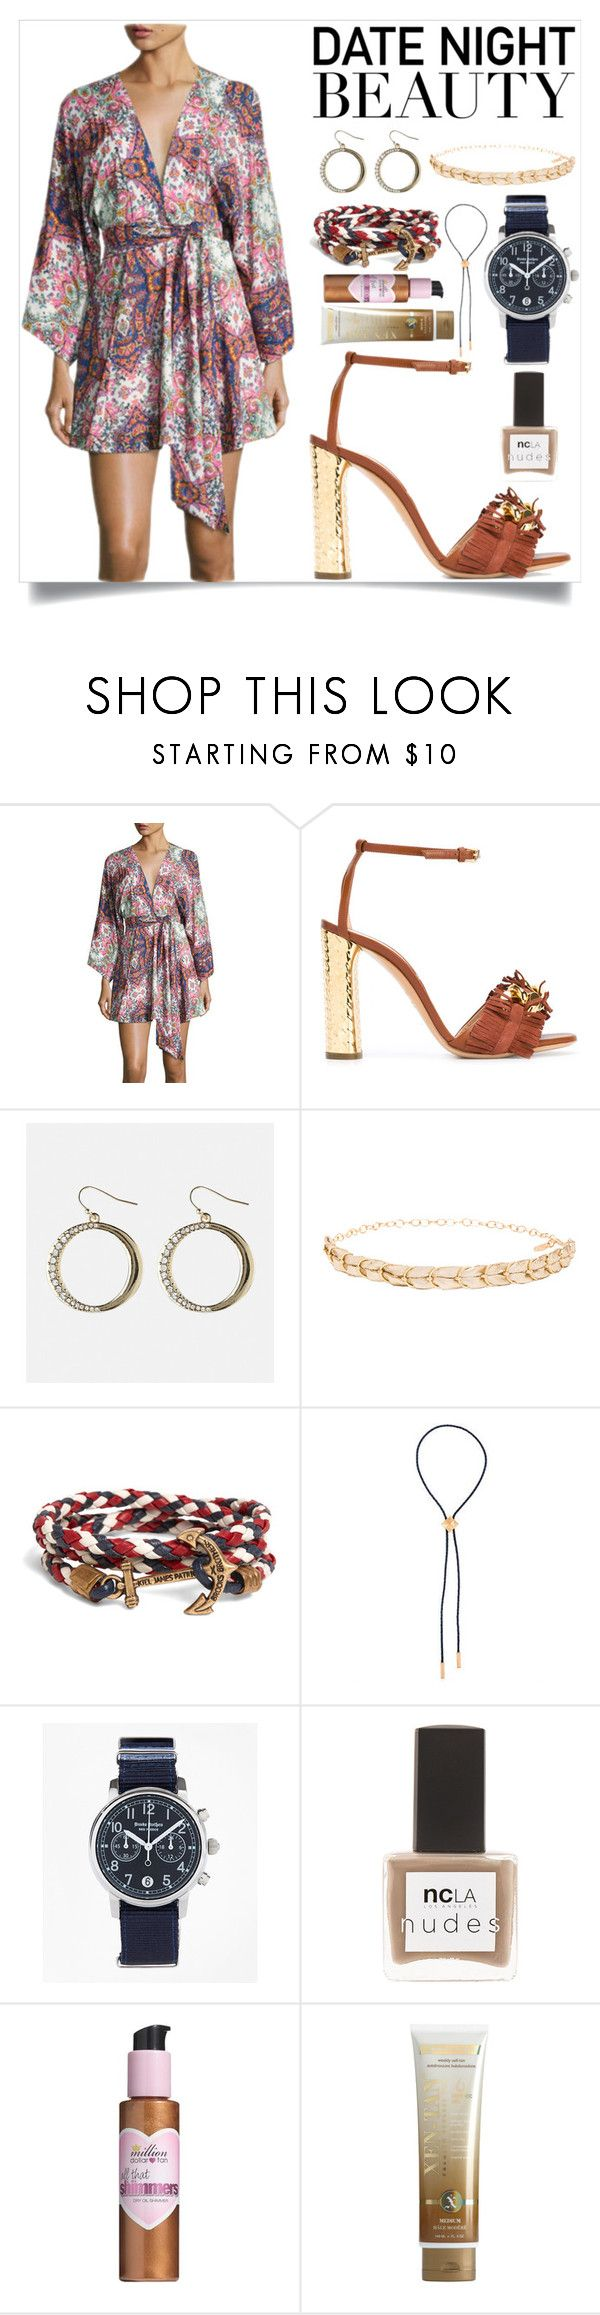 """Date night beauty"" by camry-brynn ❤ liked on Polyvore featuring Yumi Kim, Casadei, Avenue, Ettika, Brooks Brothers, Northskull, ncLA, Million Dollar Tan and Xen-Tan"